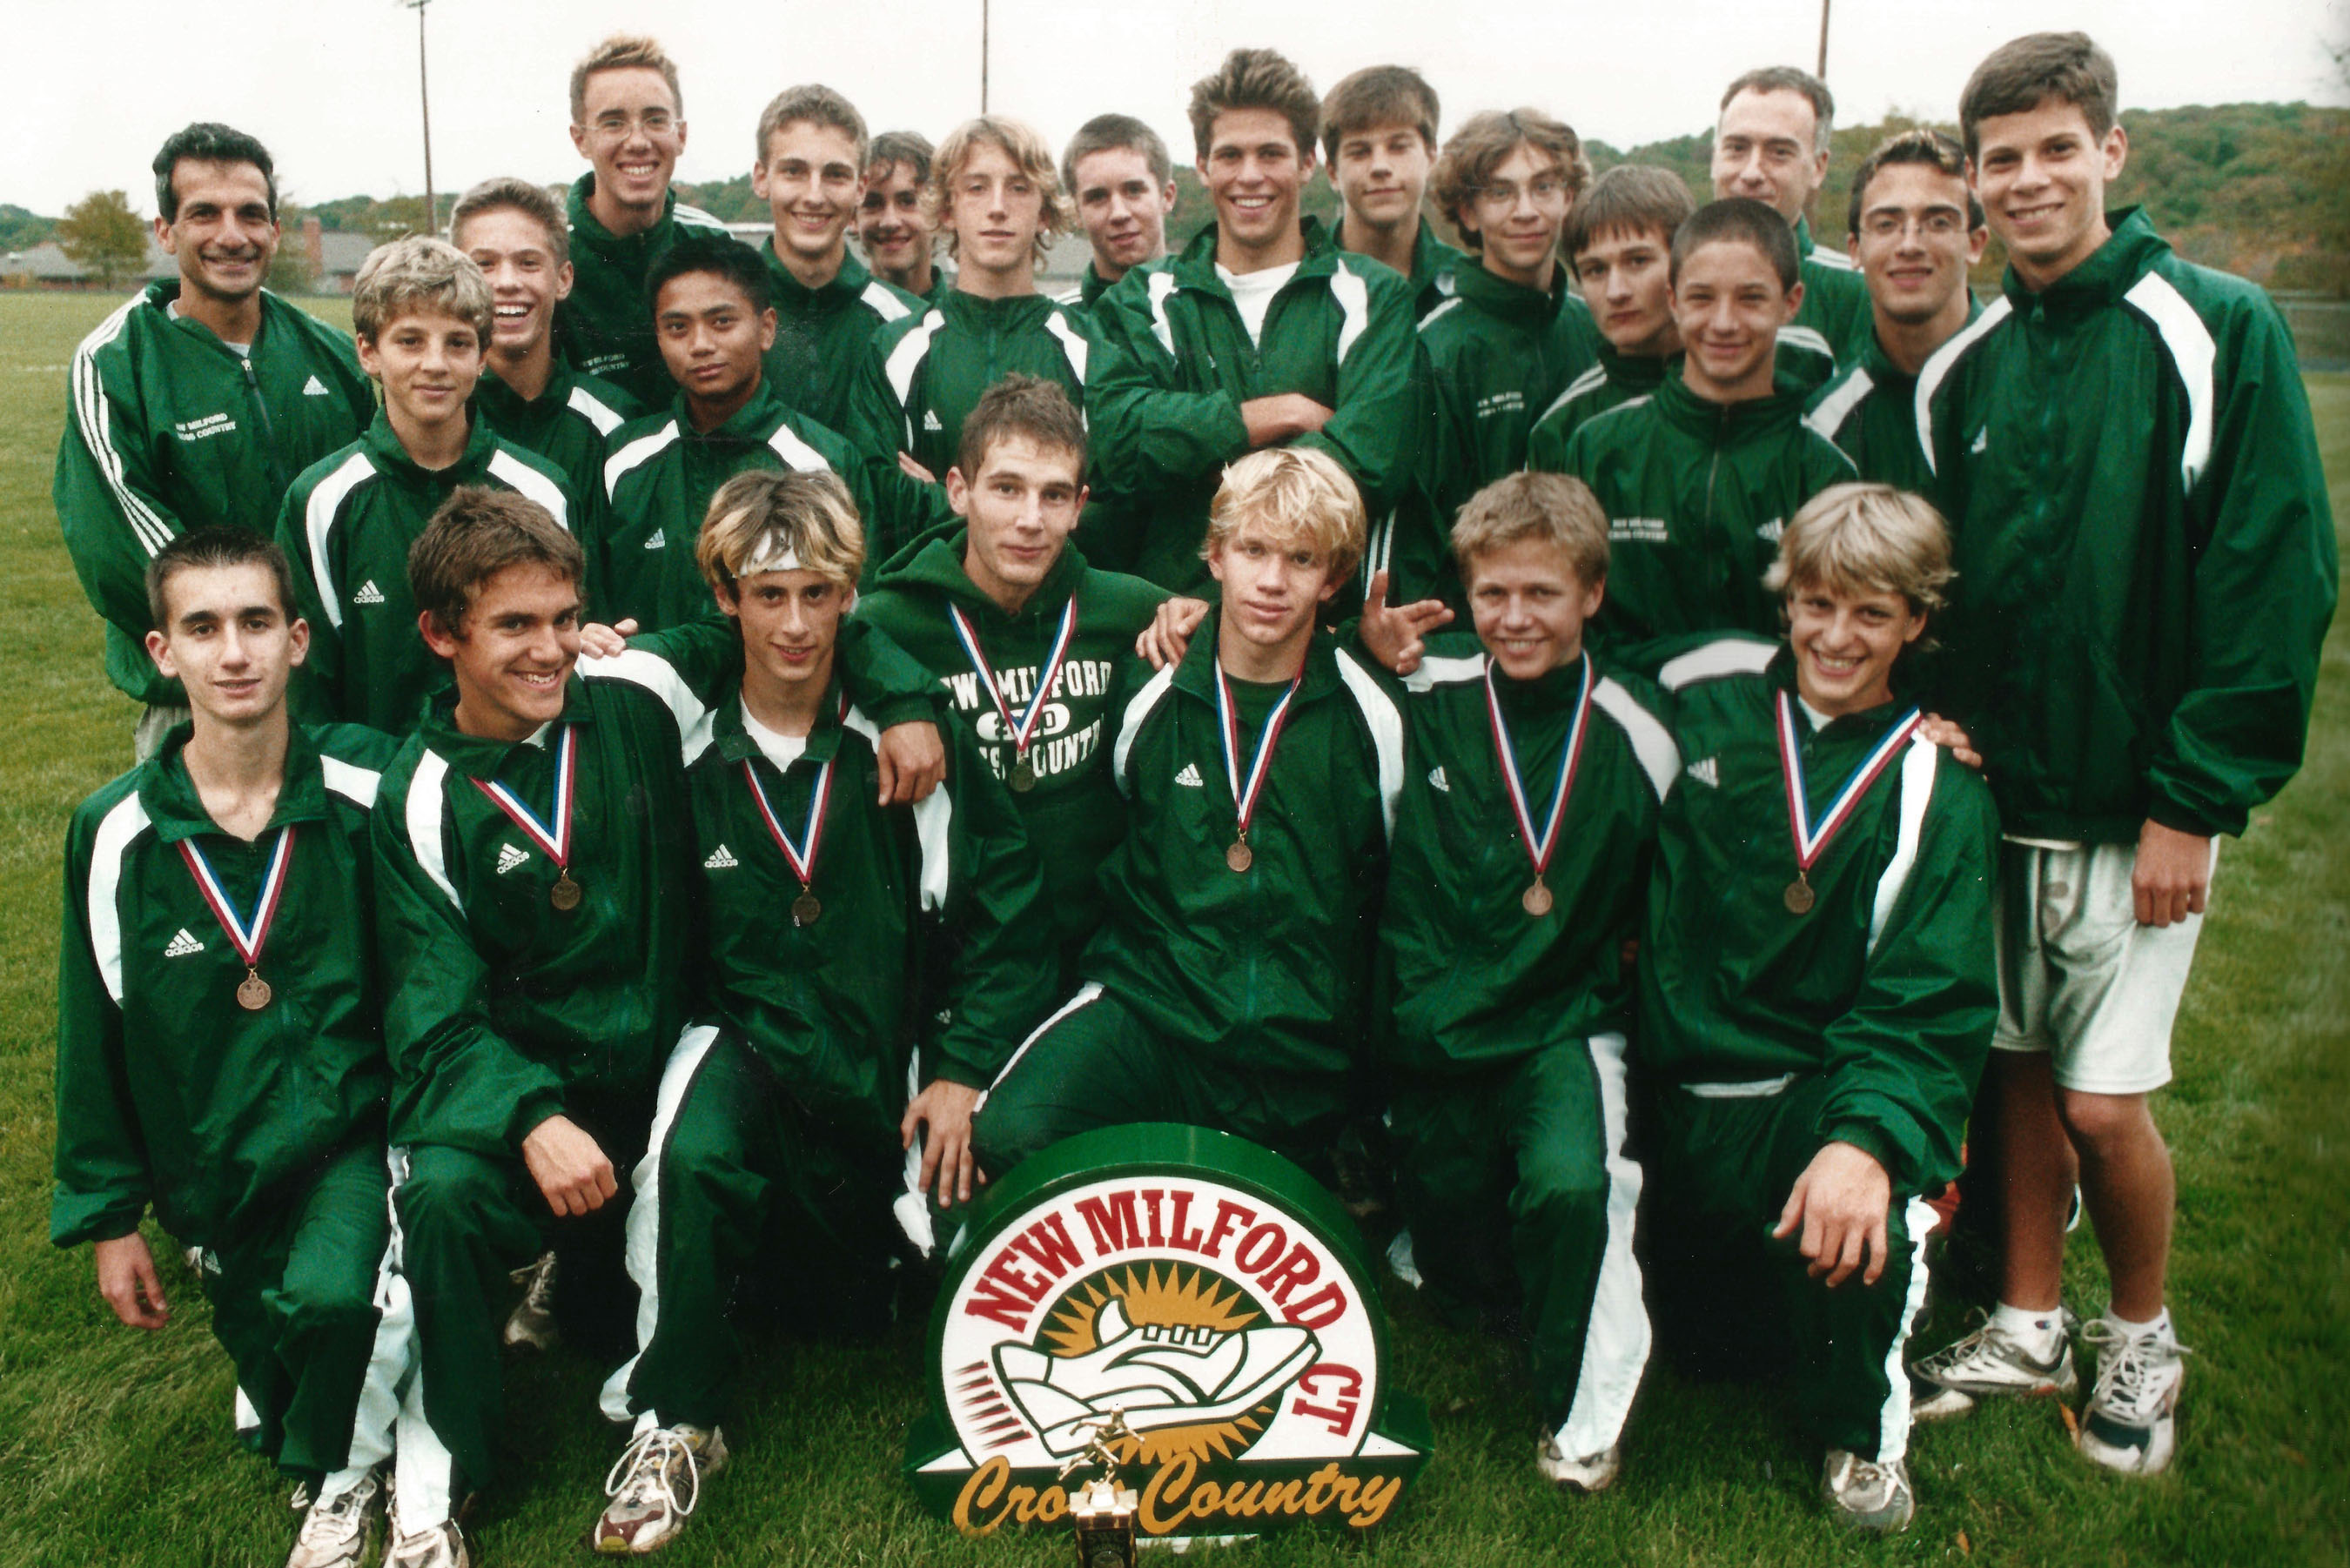 Green Wave boys' cross country 2002 state 'L' champions